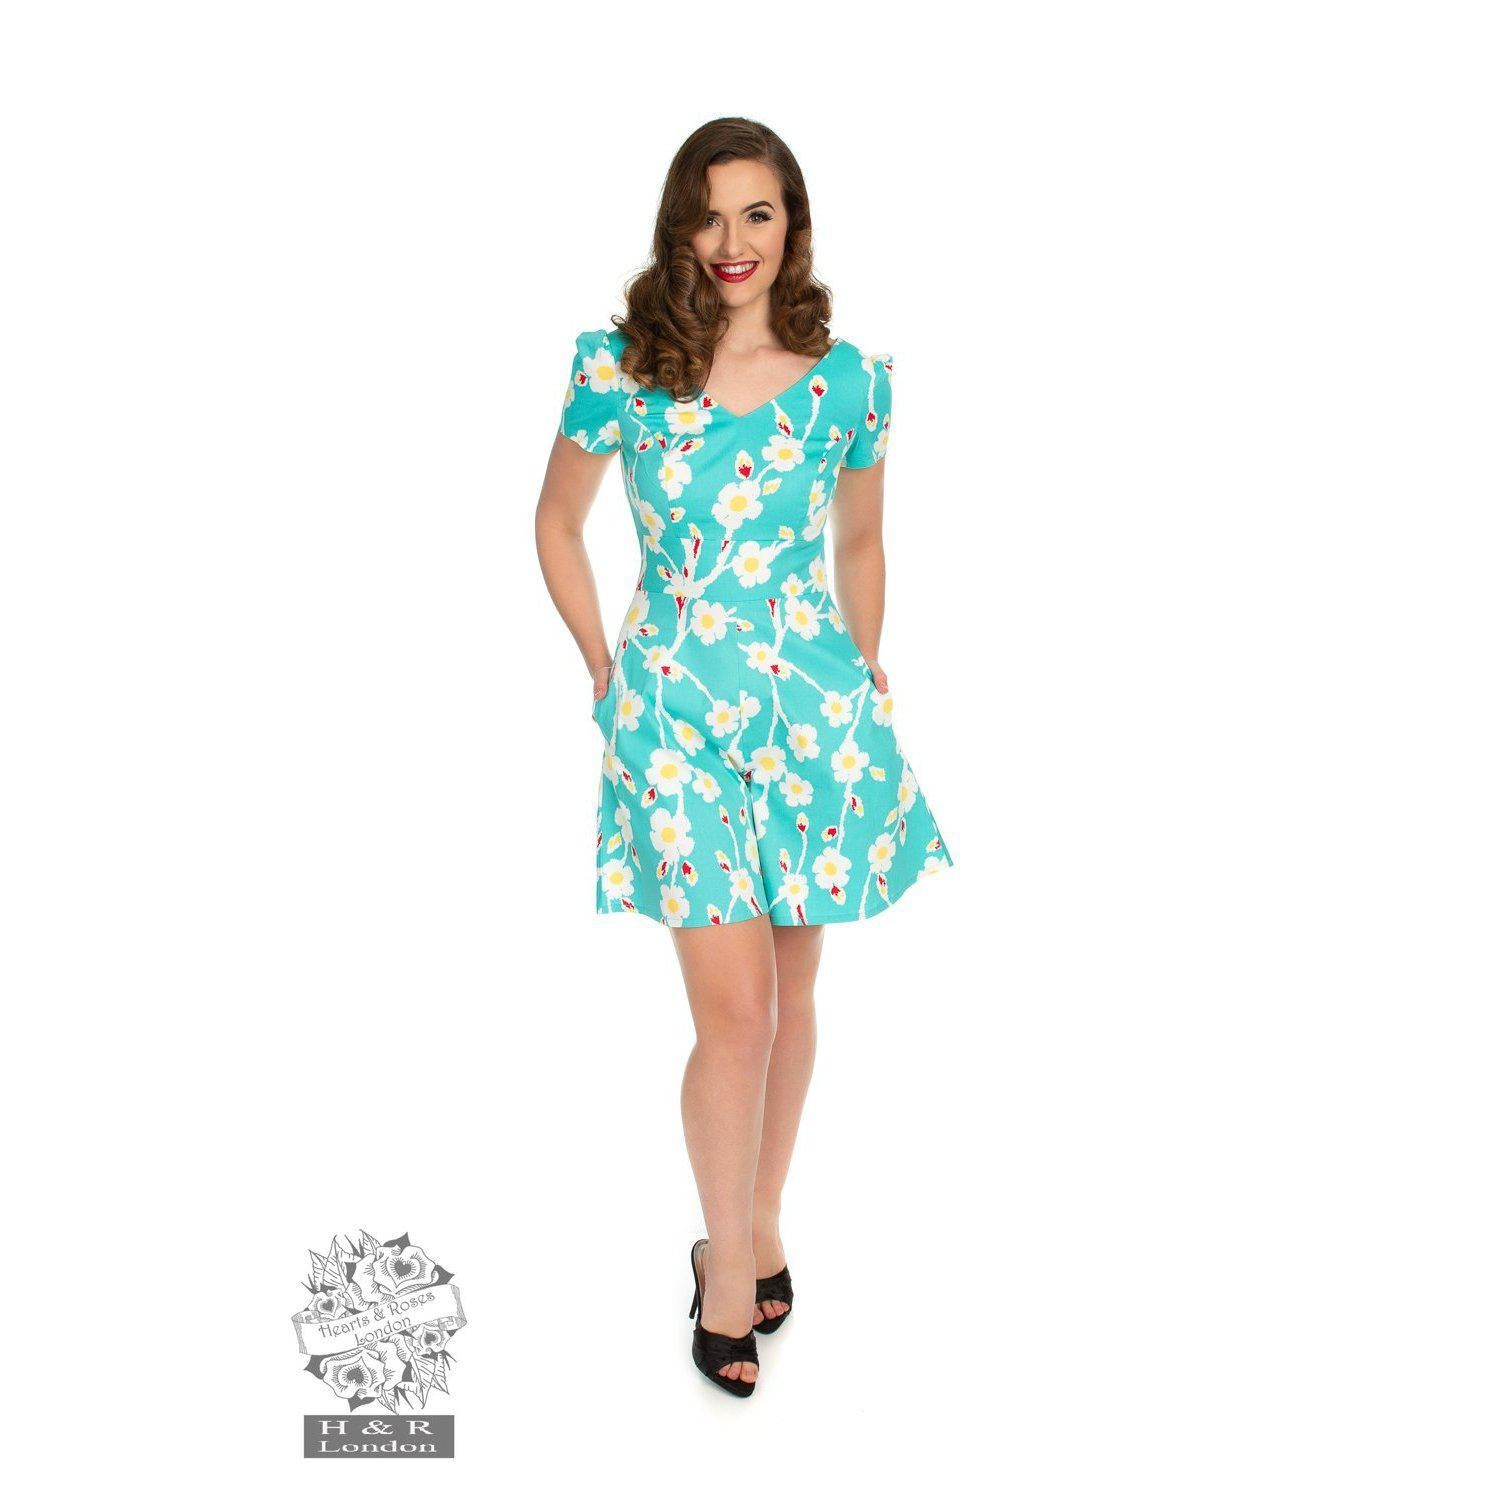 Hearts & Roses Turquoise Floral Playful Playsuit-Vendemia